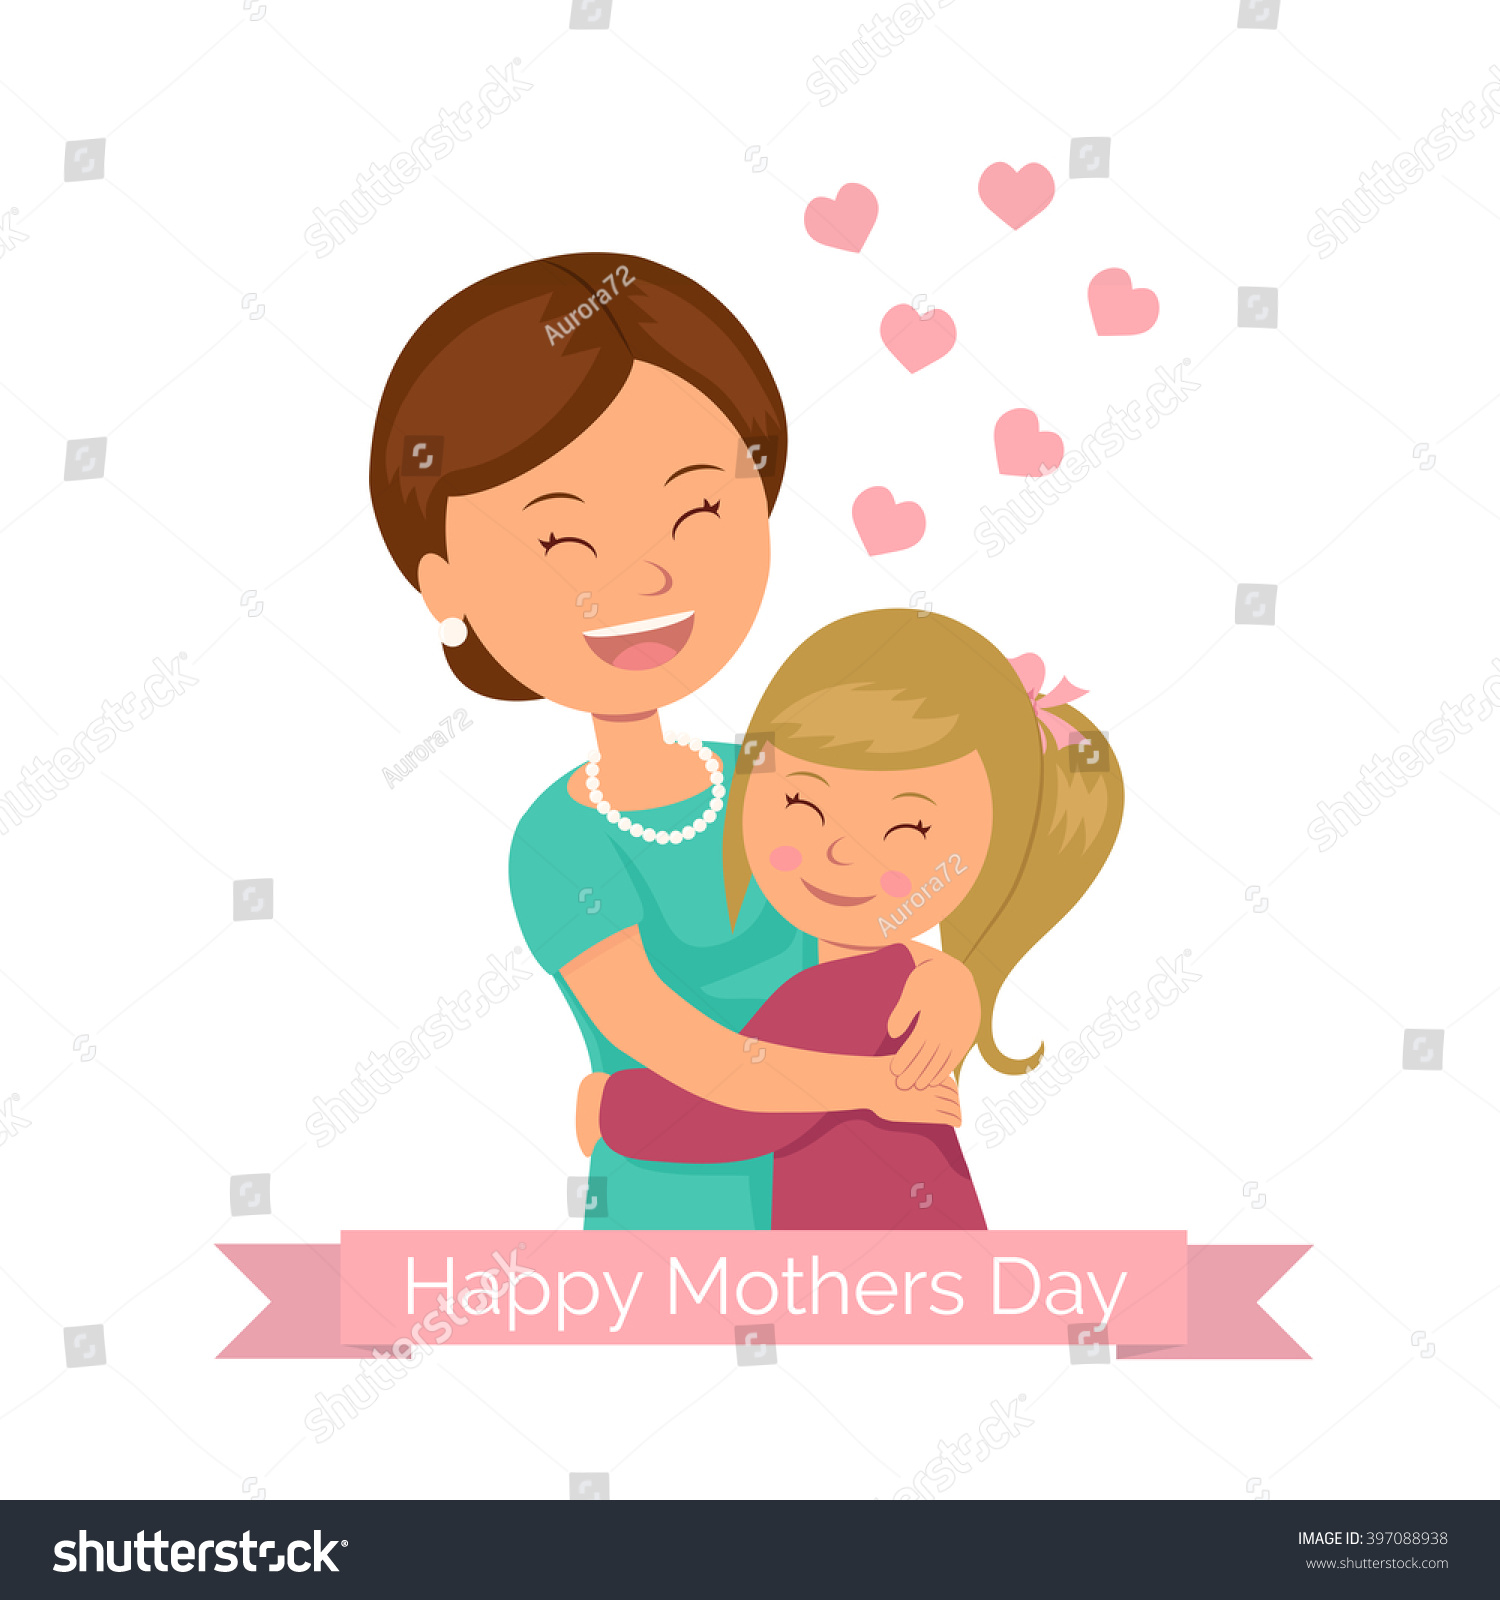 Template Greeting Mothers Day Daughter Hugging Stock Vector Royalty